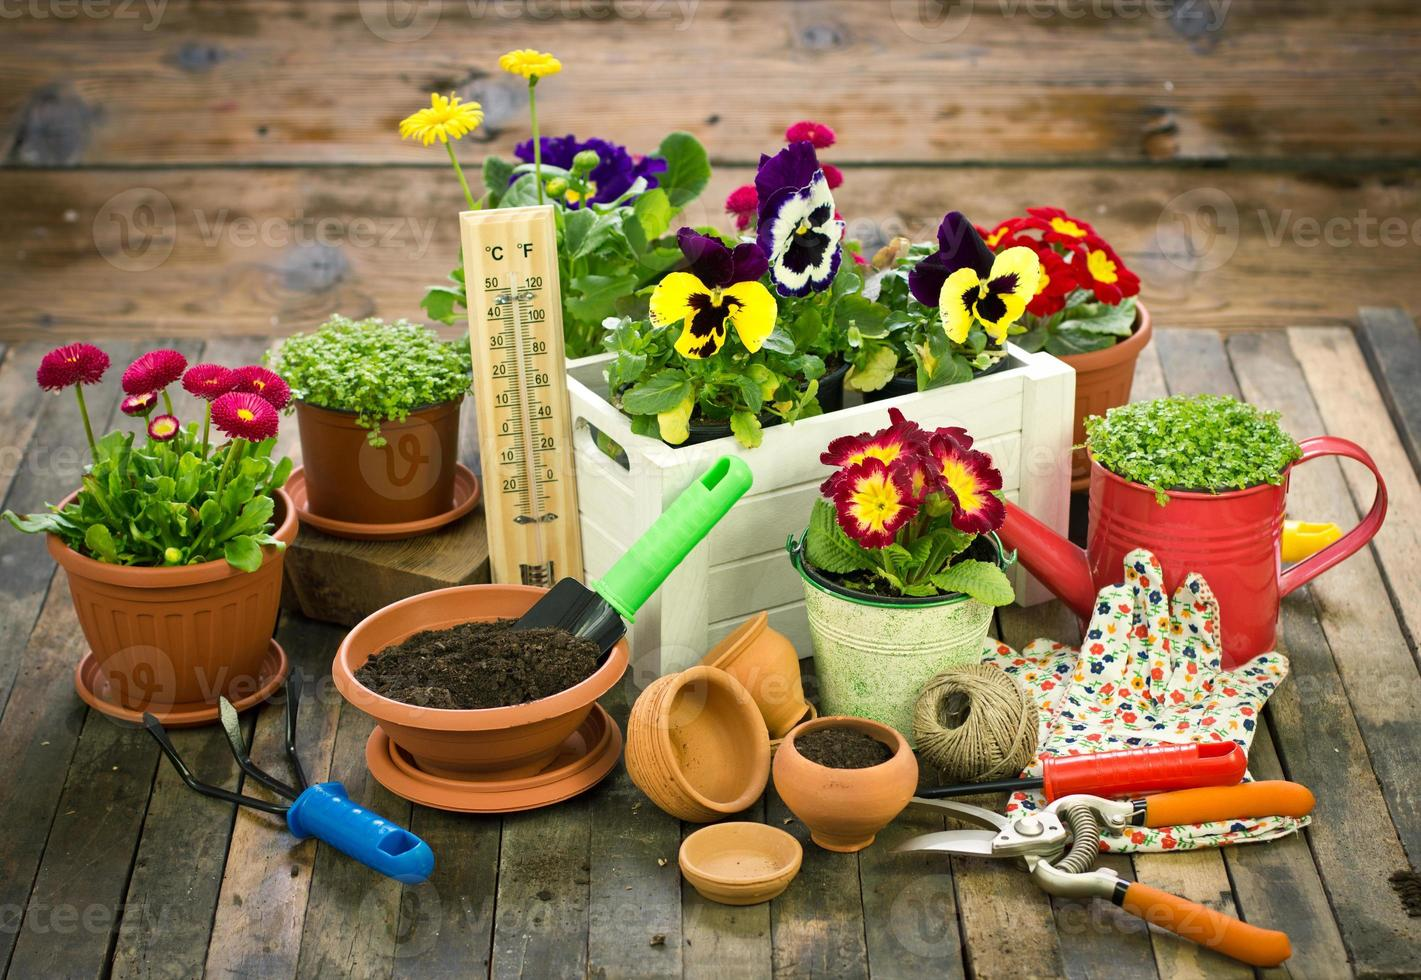 Gardening tools and flowers photo